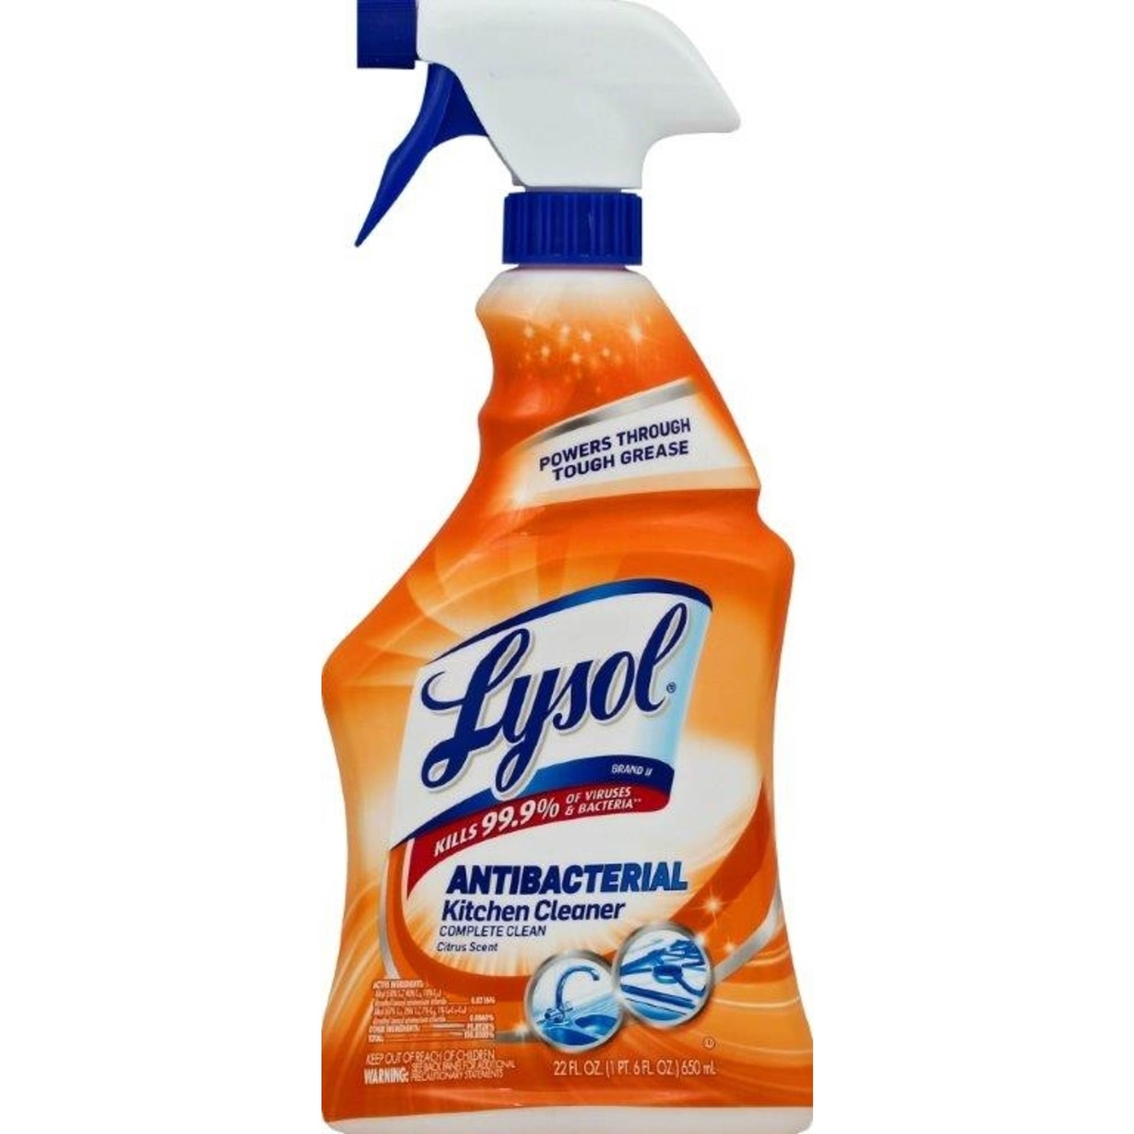 lysol antibacterial kitchen cleaner ash cabinets citrus scent cleaners